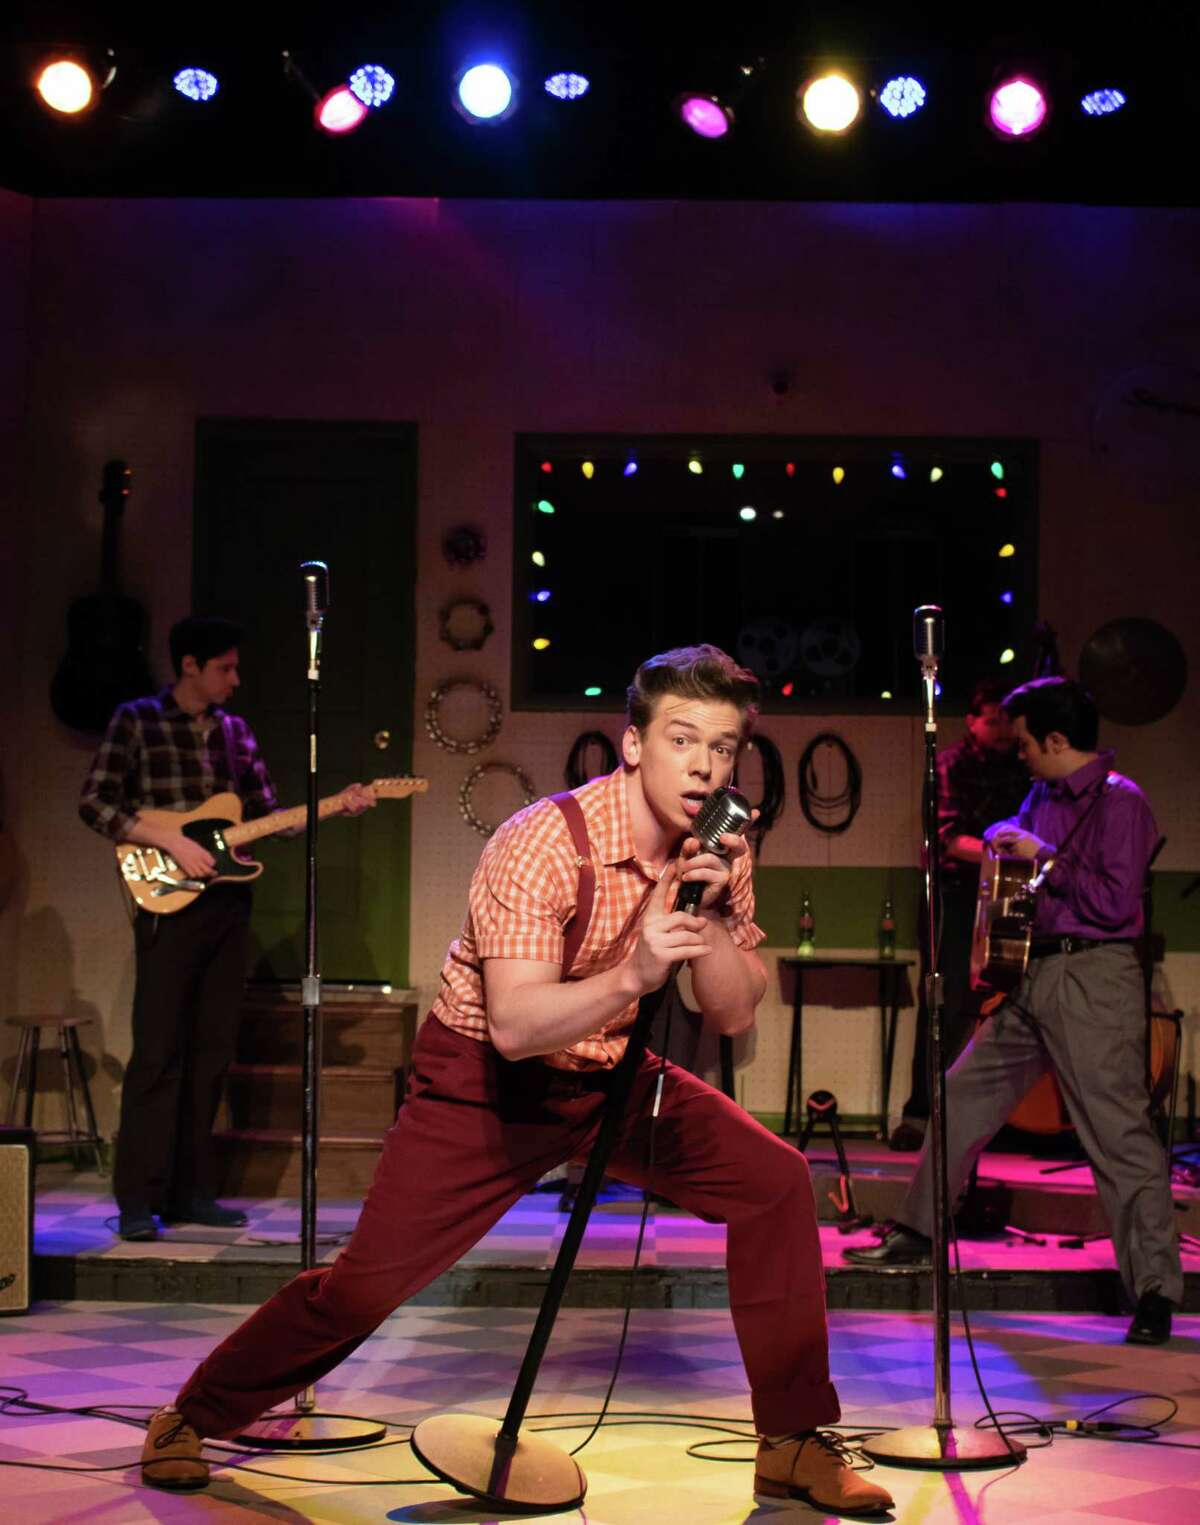 Jefferson McDonald as Jerry Lee Lewis in